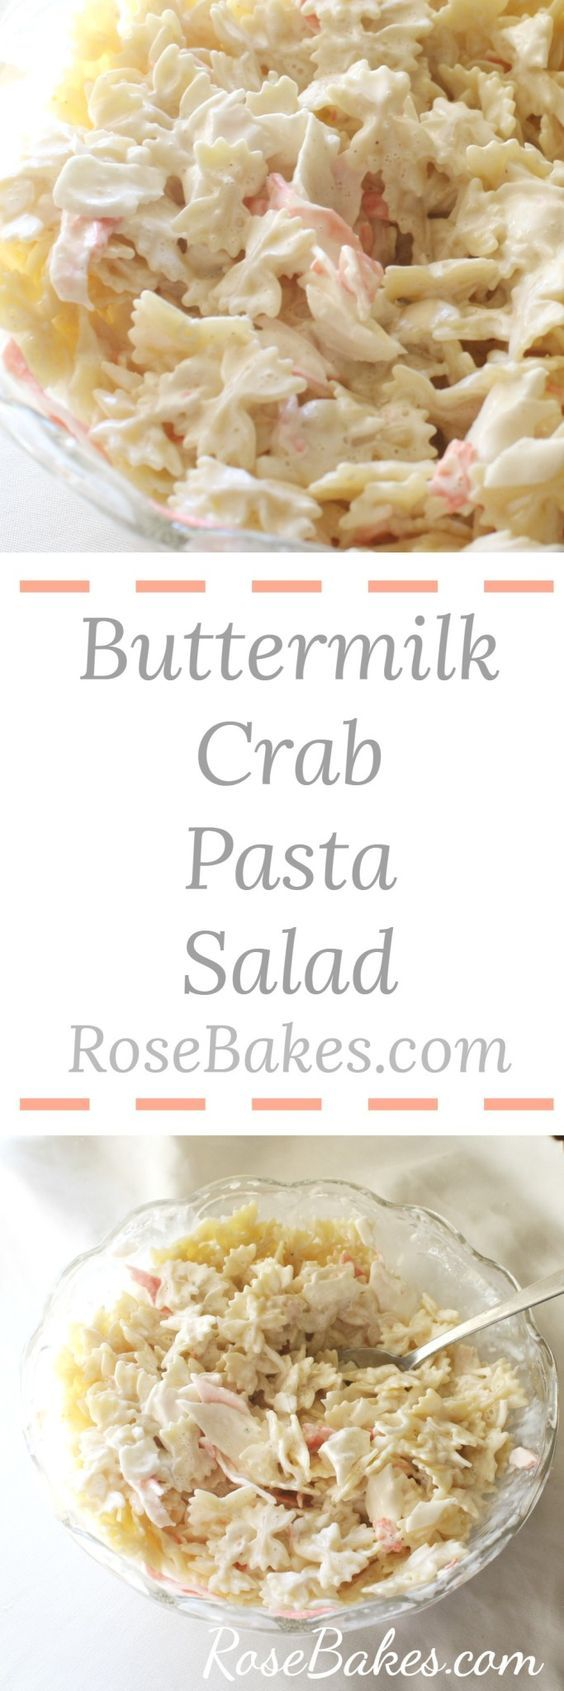 Buttermilk Crab Pasta Salad